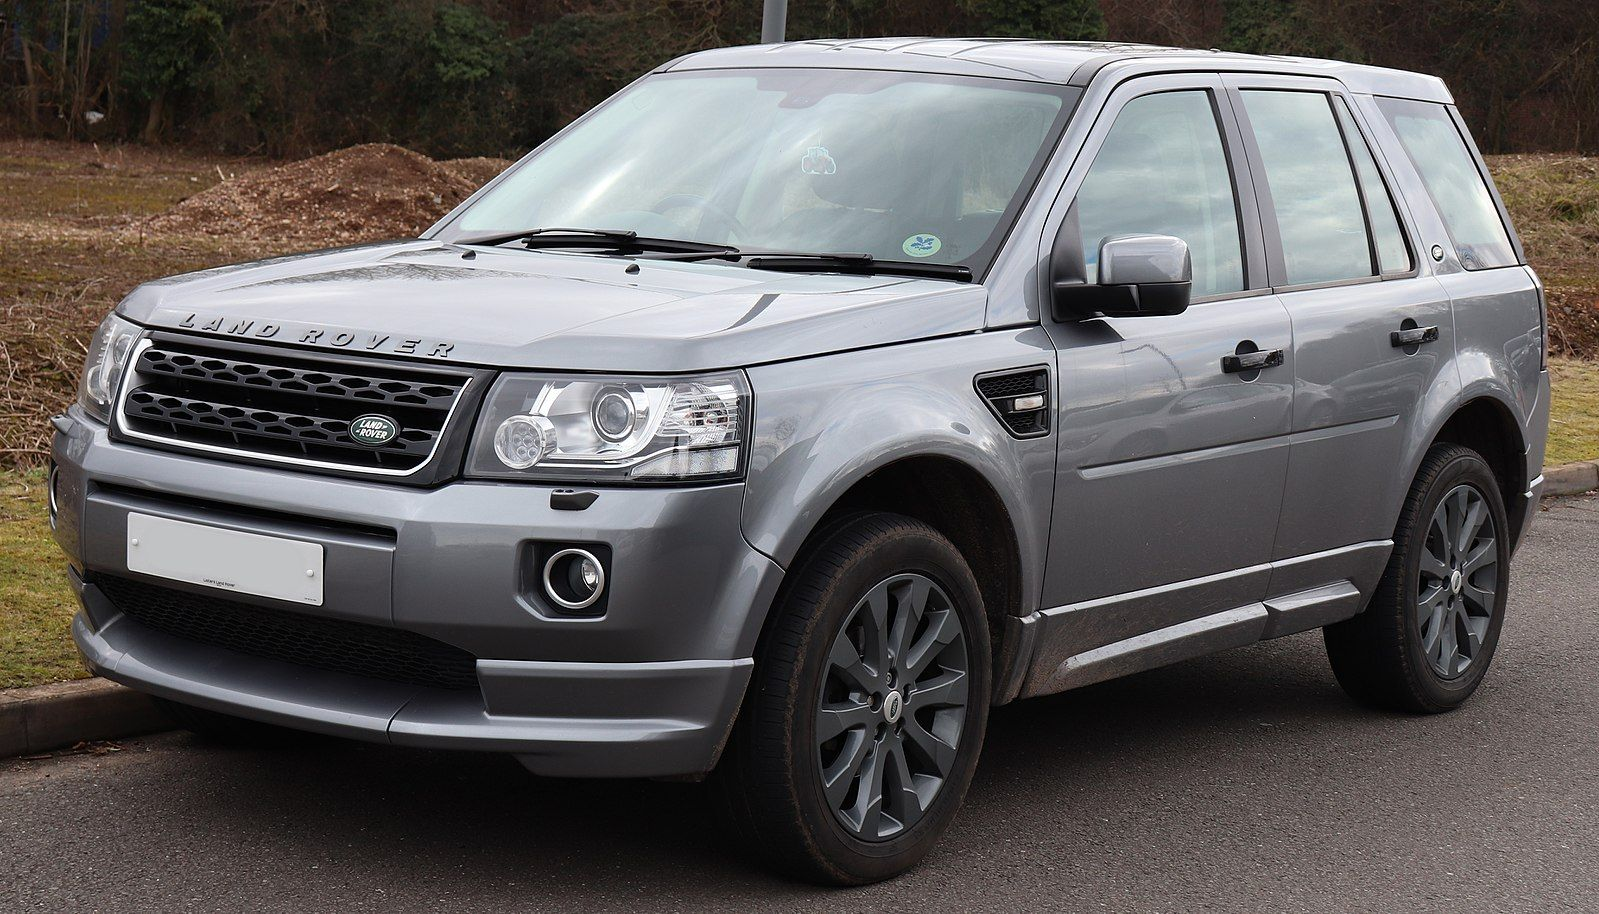 Difference Between Land Rover Land Rover Freelander Engines For Sale